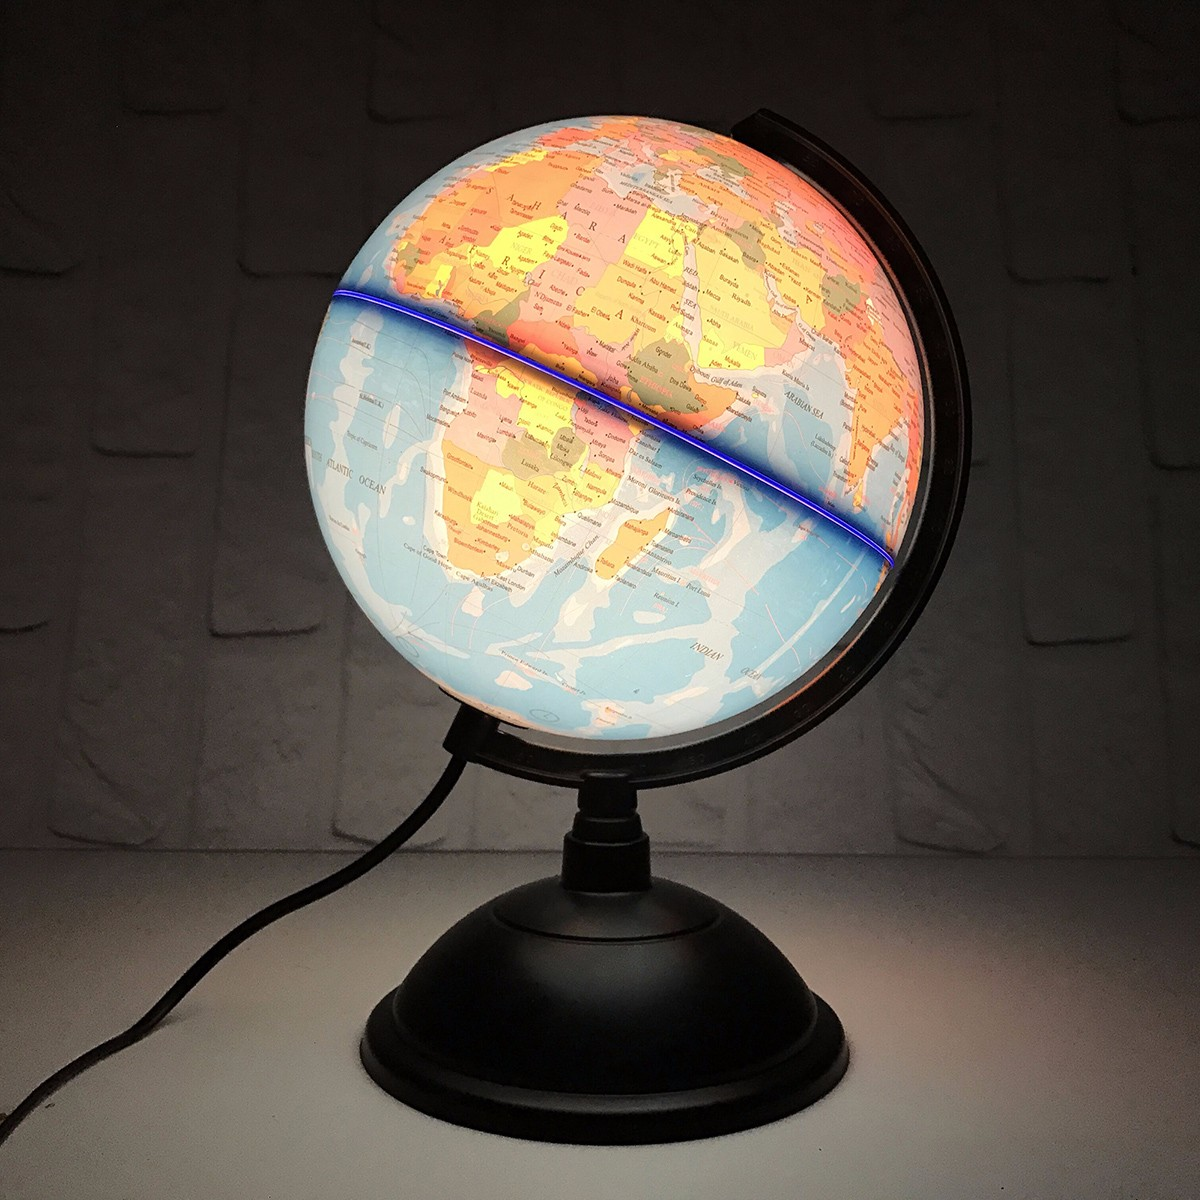 20cm LED World Globe Earth Tellurion English Map Rotating Stand Geography Educational Toys Home Office Desktop Decorations|Geography|Education & Office Supplies - title=